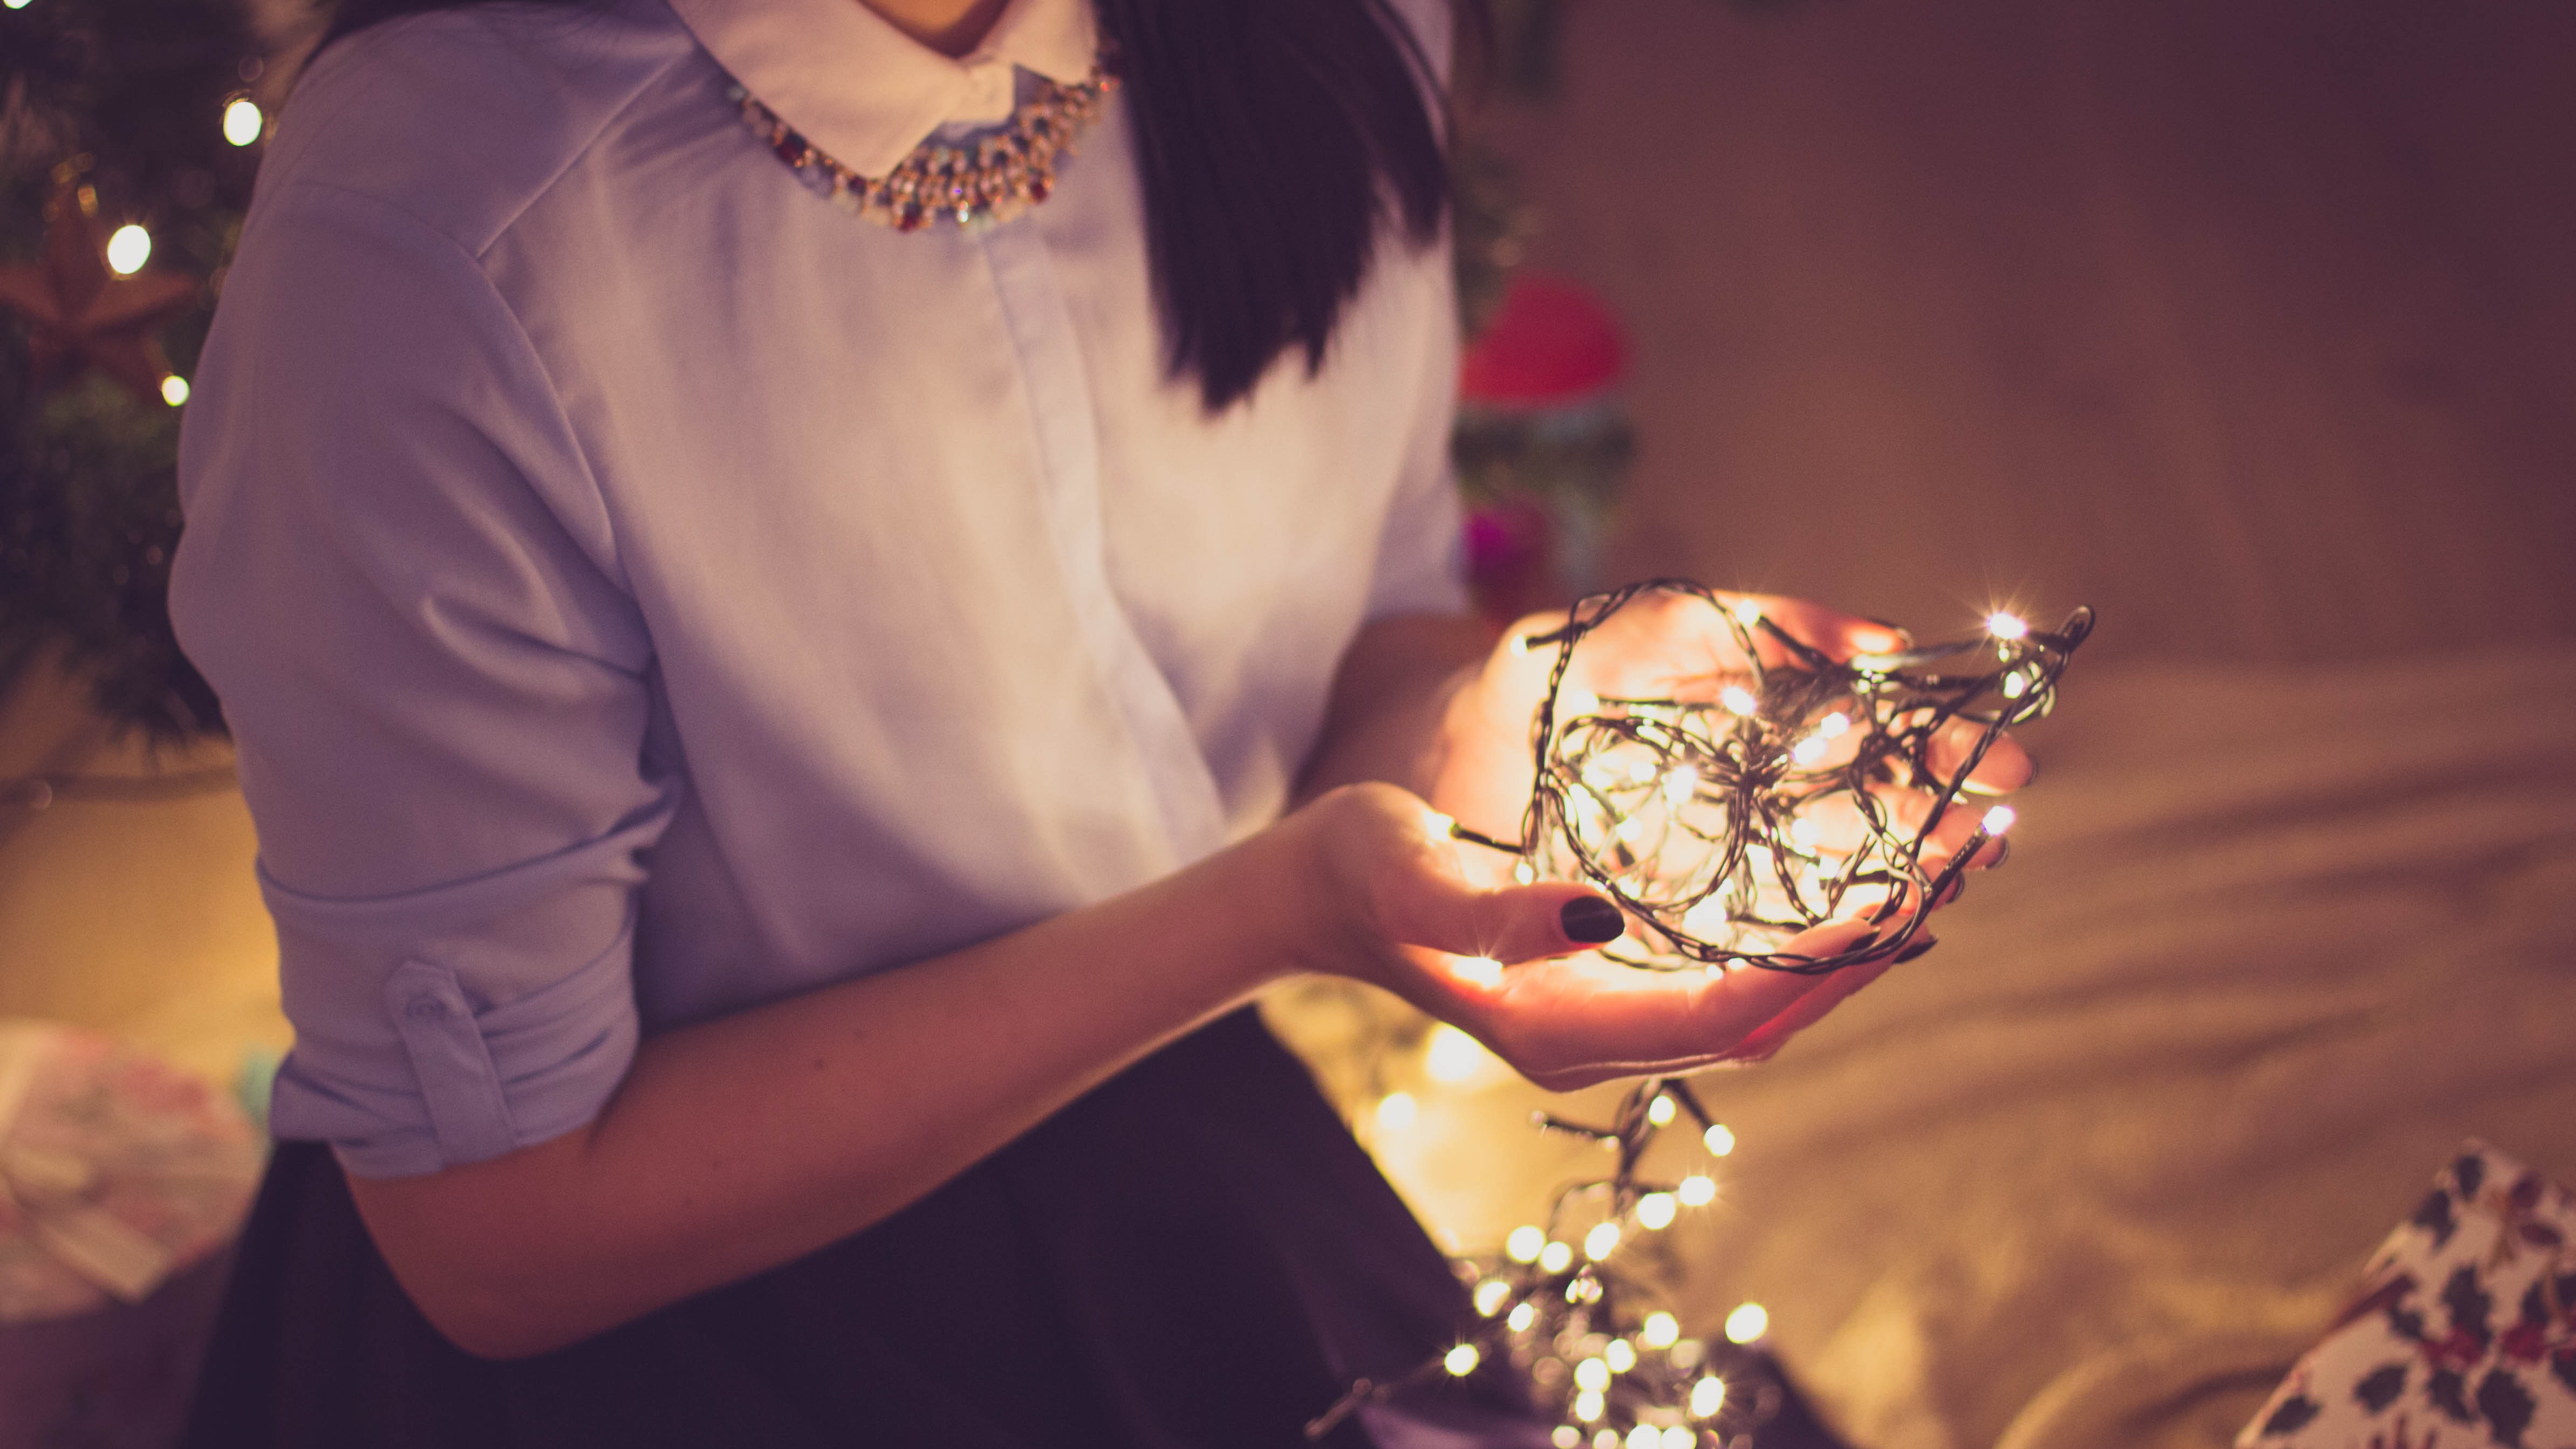 Keeping Your Christmas Lights Up 'Is Good For Your Mental Health'